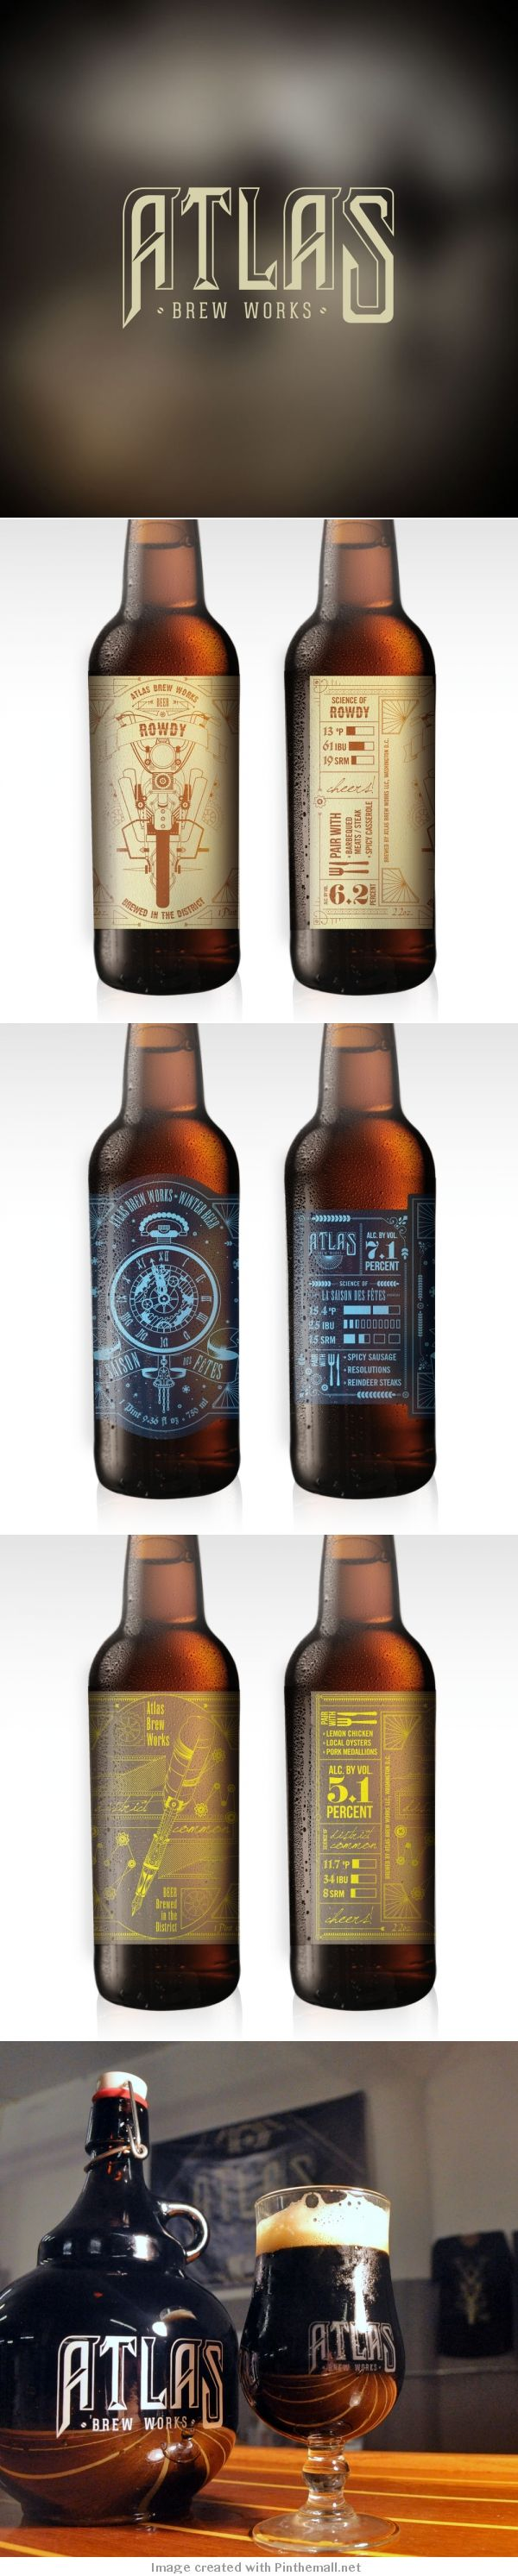 Vip these de lite ful orchid designs include 9 designs which can be - Atlas Brew Works Craft Brewery In Washington D C Packaging Design By Bates Creative